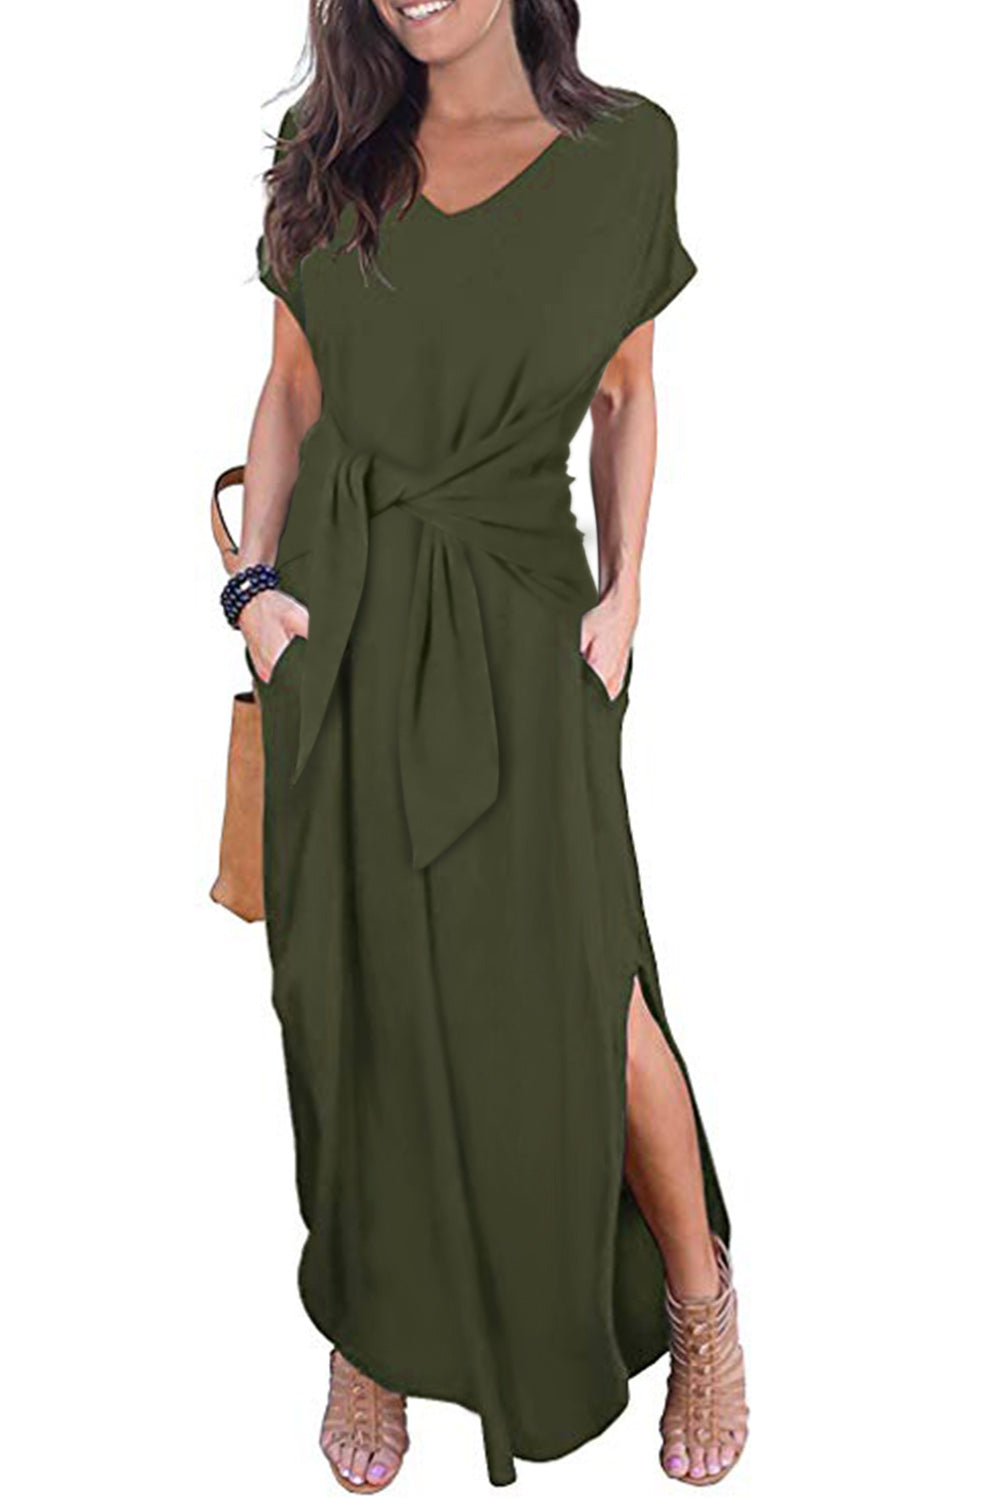 Green Casual Loose Pocket Short Sleeve Split Maxi Dress